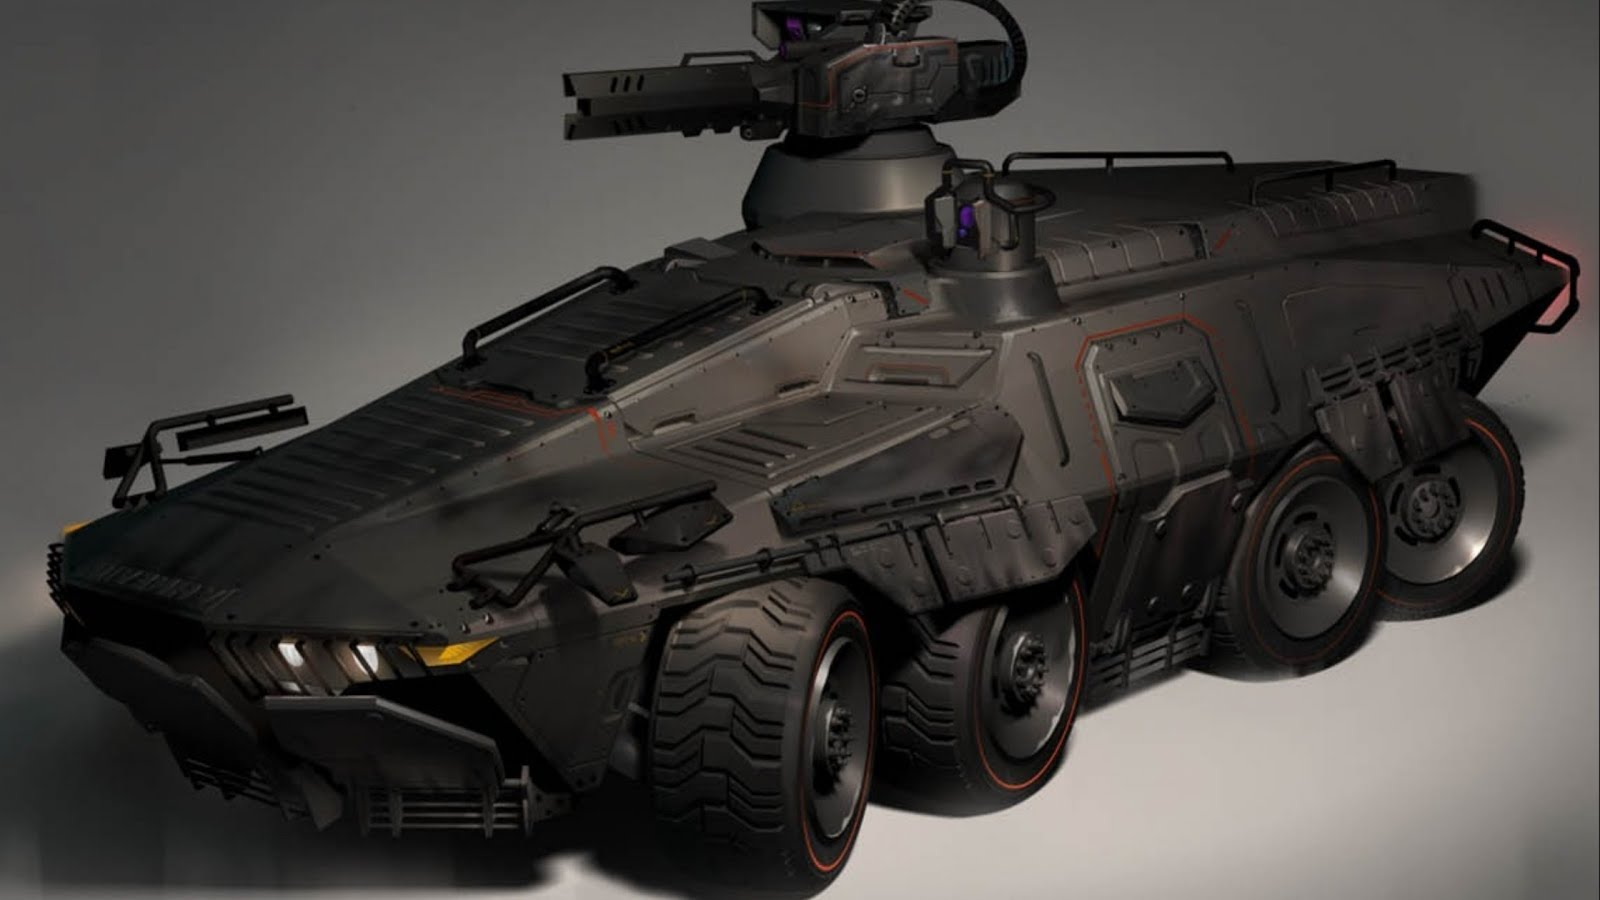 Taking a Look at Vehicle Design for Genesys